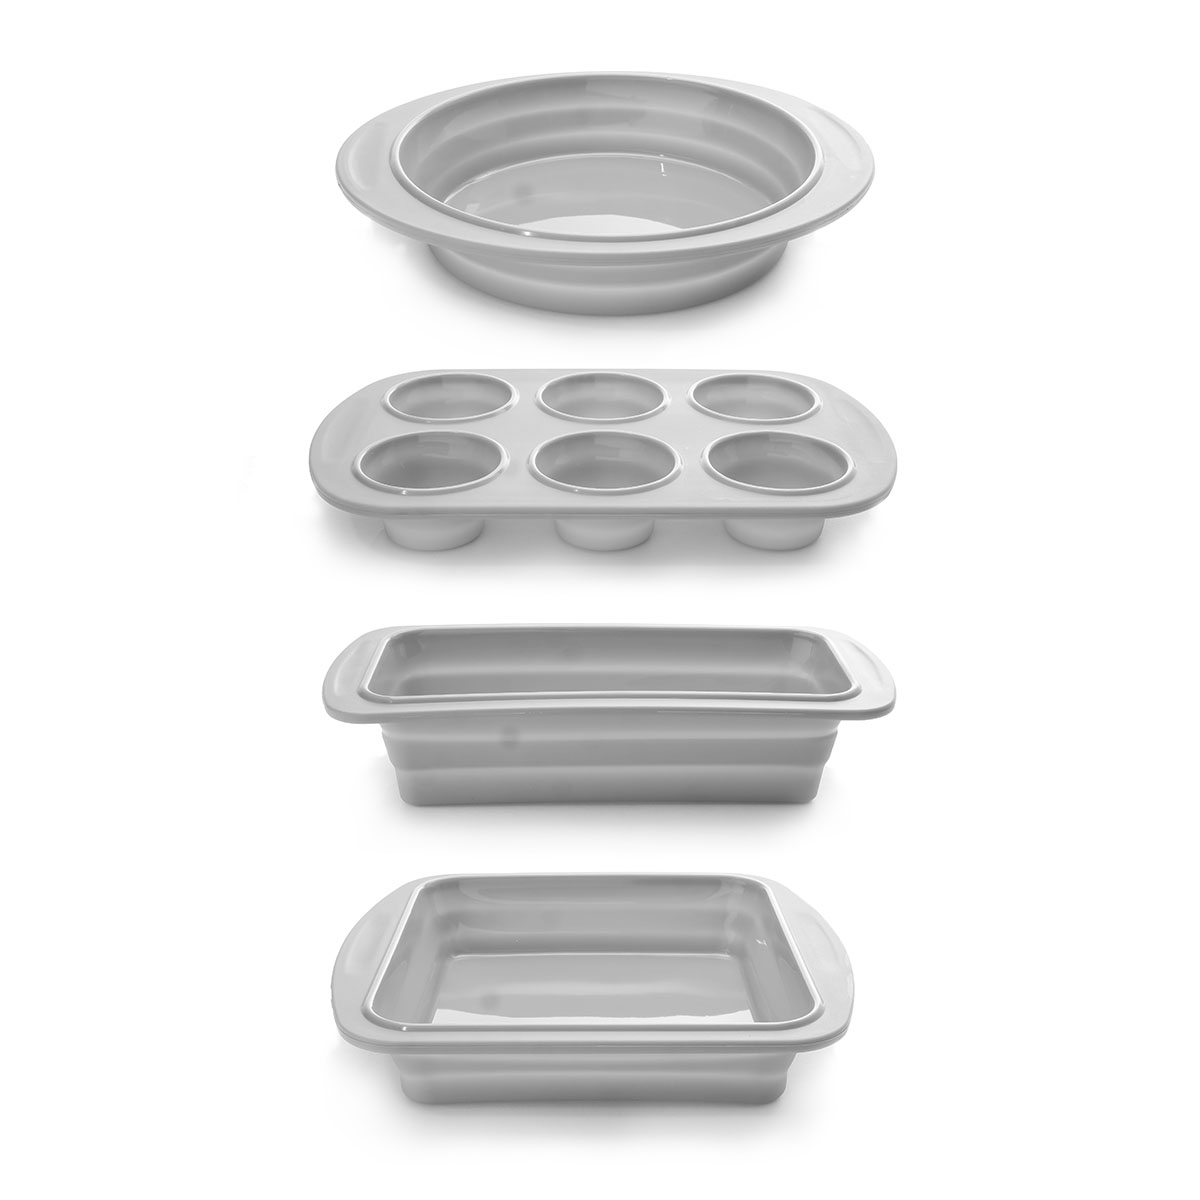 Cook-039-s-Companion-4-Piece-Collapsible-Silicone-Bakeware-Set thumbnail 2